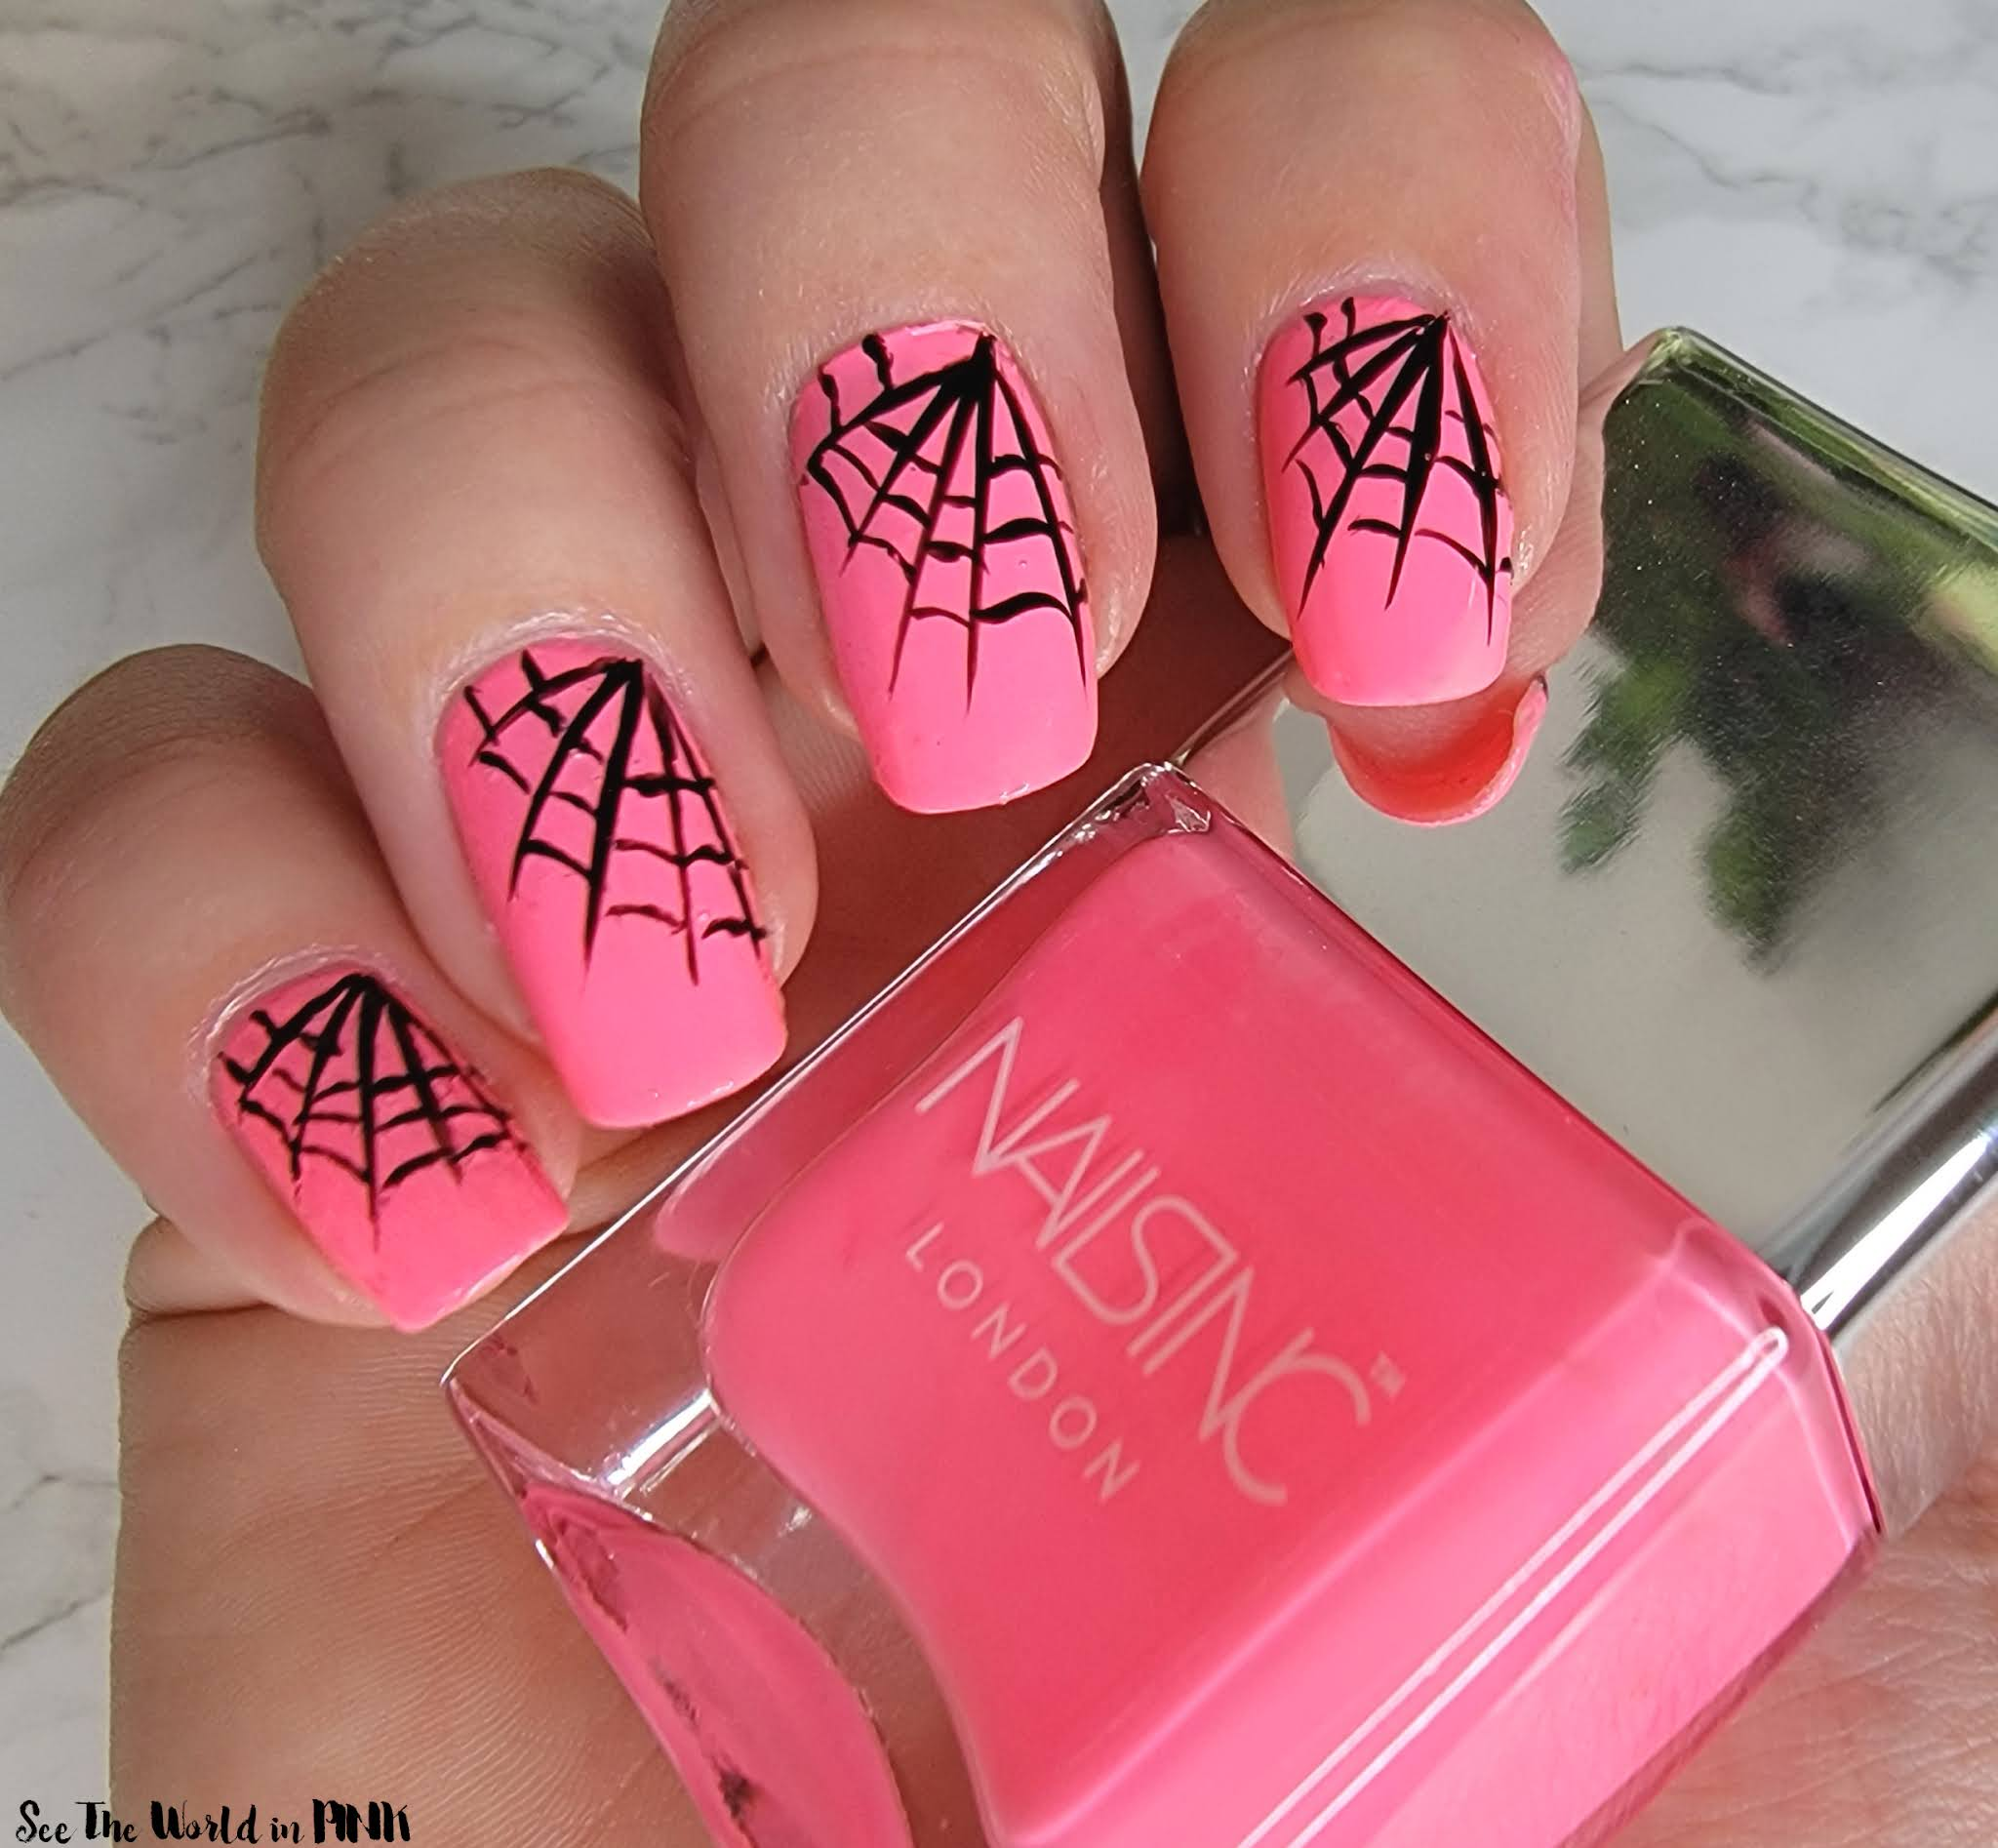 Manicure Monday - Pink Spider Web Nails